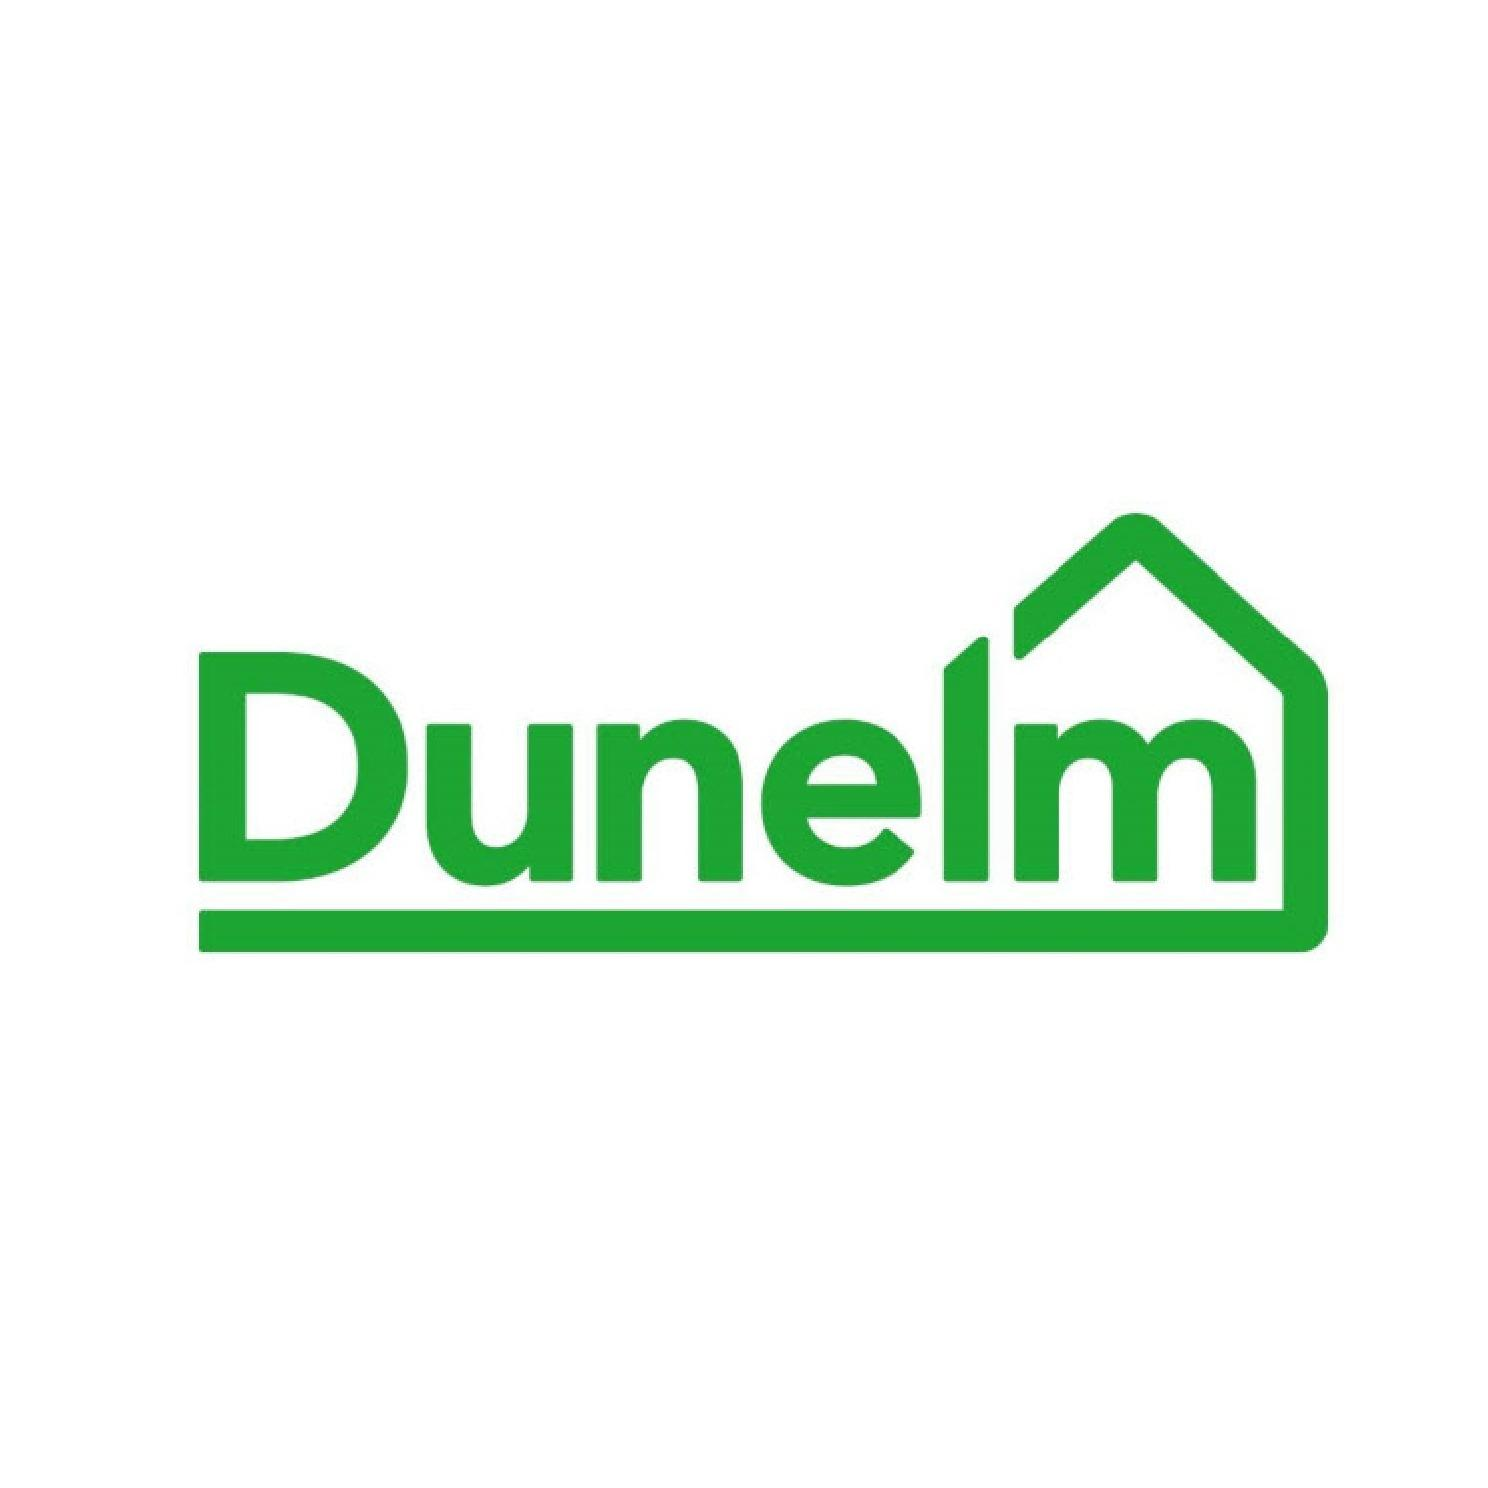 Dunelm - London, London NW2 6LW - 020 3773 4191 | ShowMeLocal.com